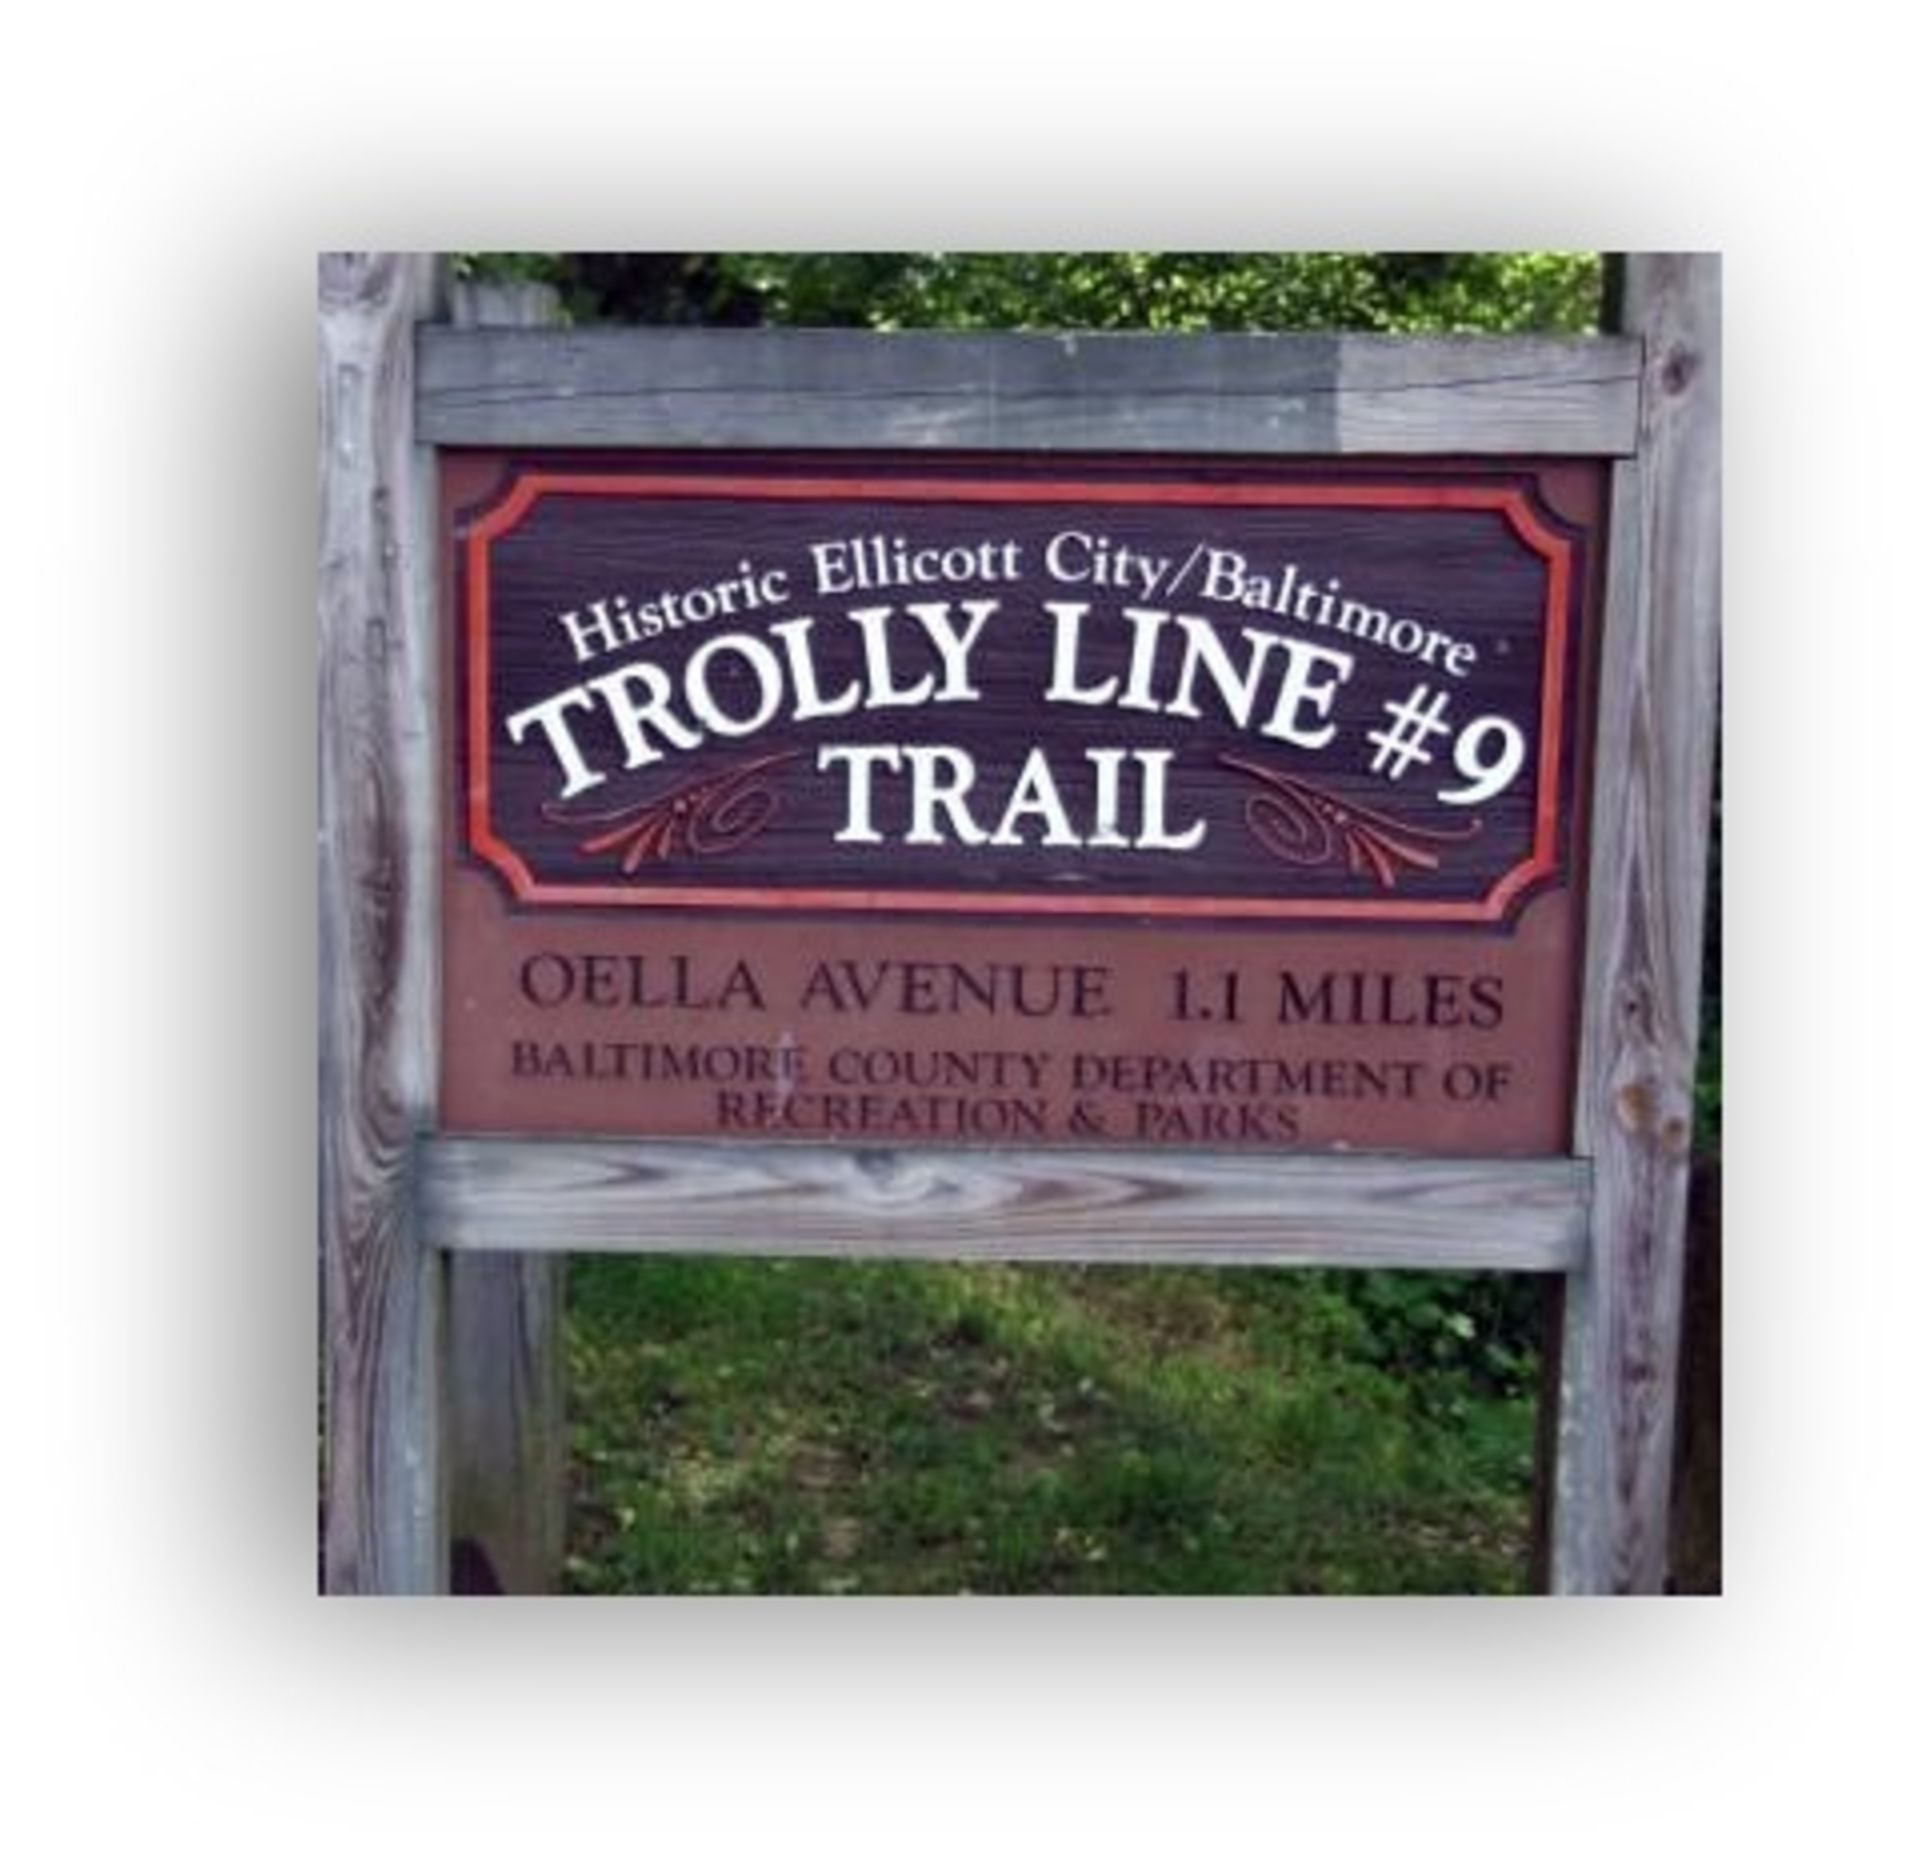 A GREAT place for a lovely walk in Ellicott City / Catonsville